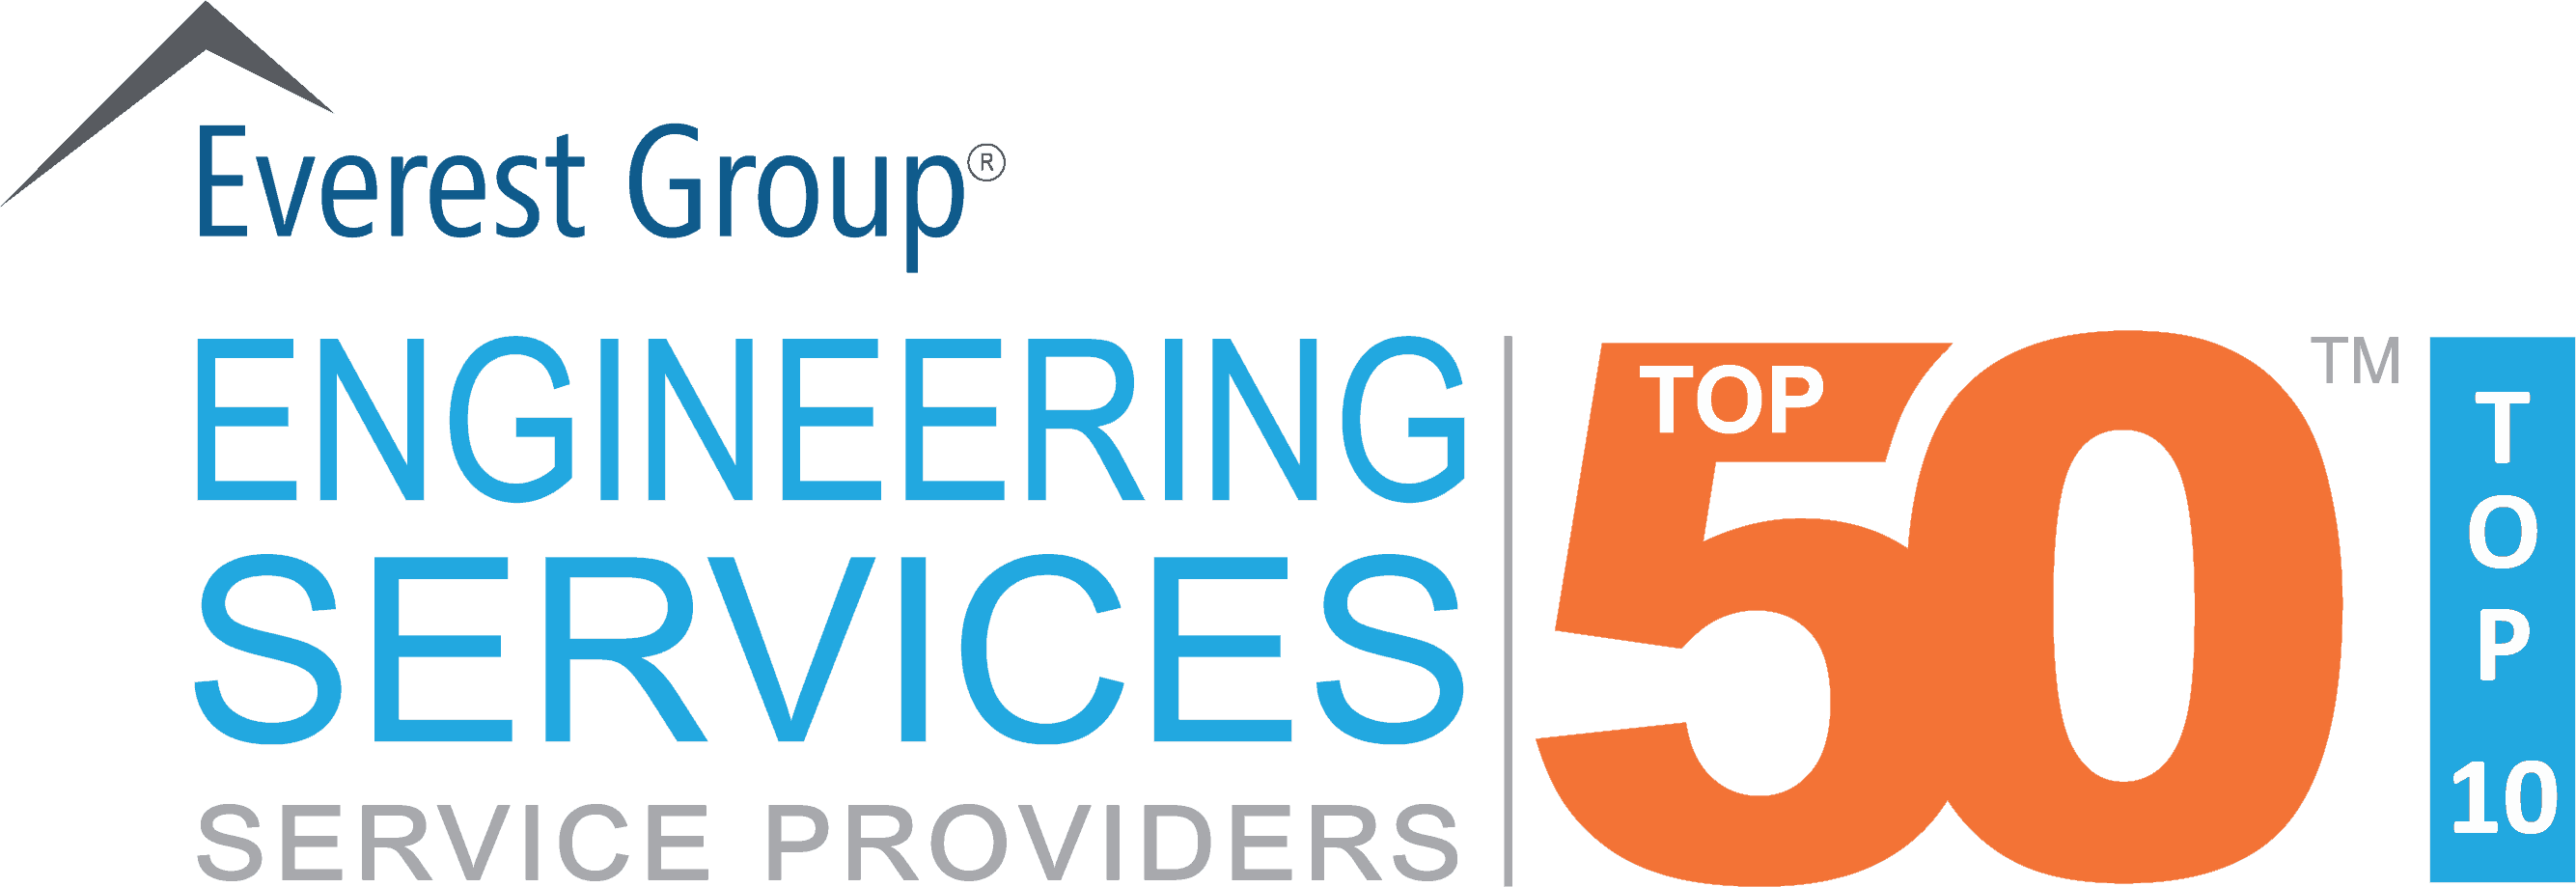 Engineering Top 50 Services